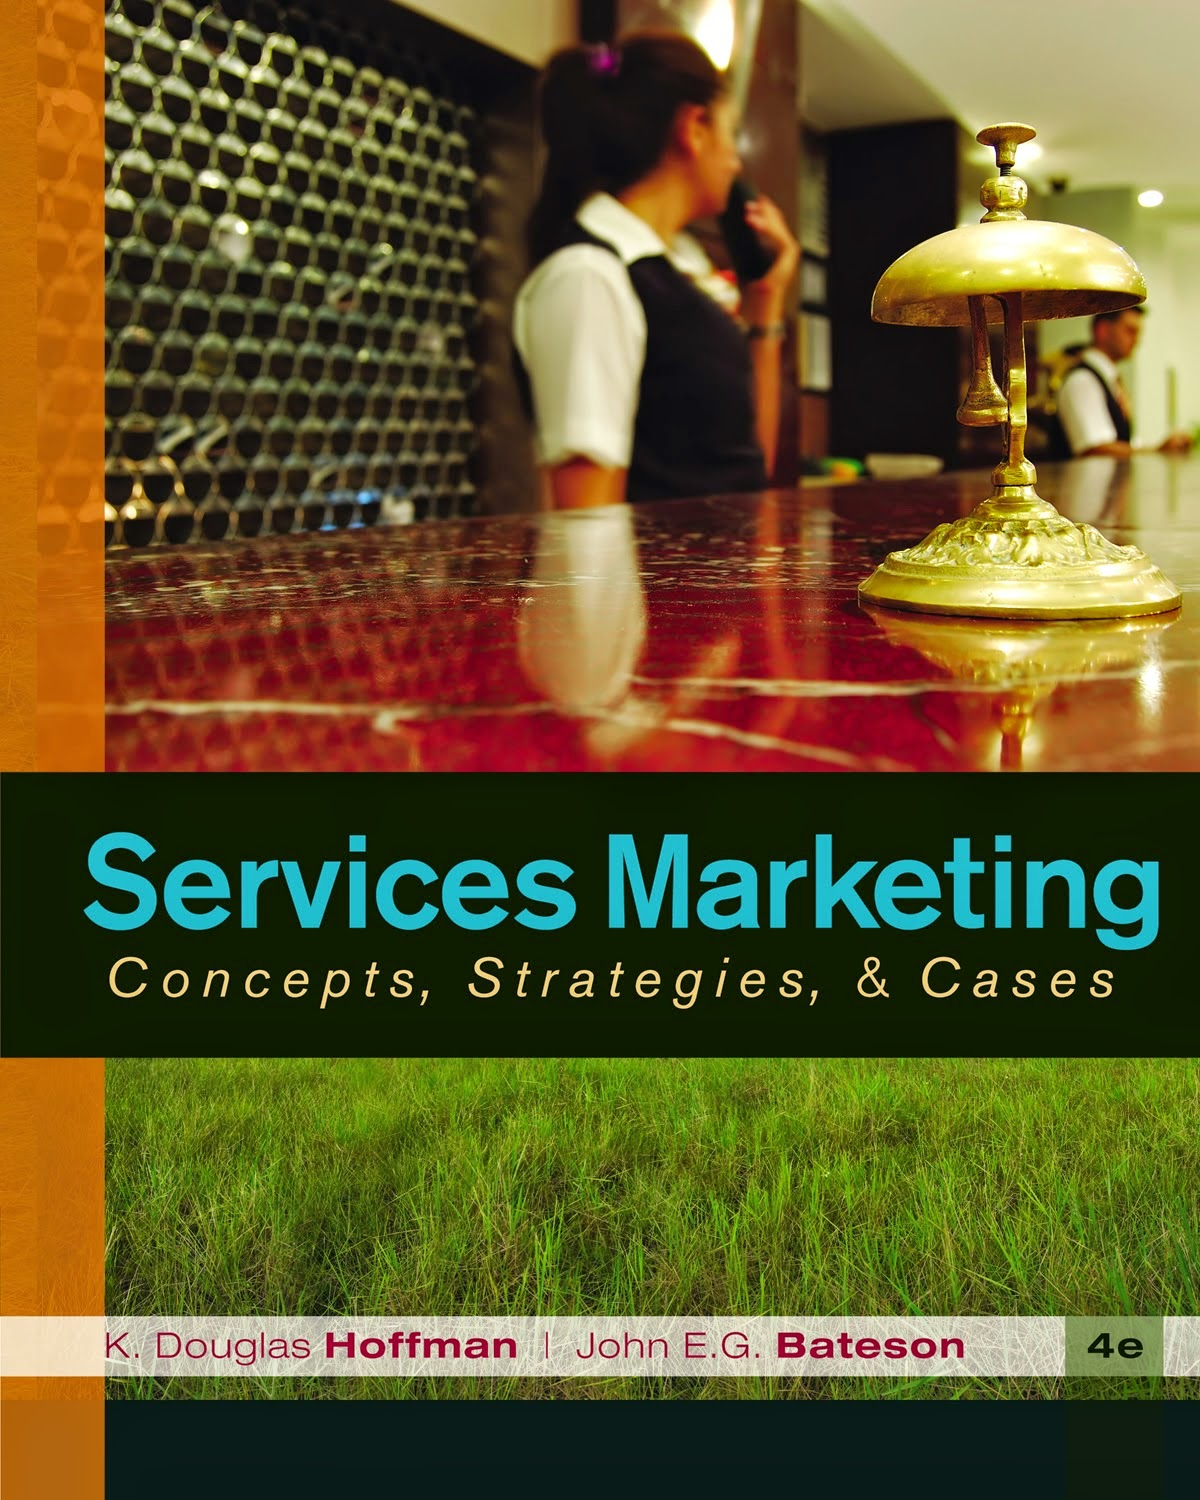 services marketing concepts Services marketing: concepts, strategies, and cases, 3rd edition offers a managerial perspective of services marketing, with special emphasis on b2b services, technology, and global services.